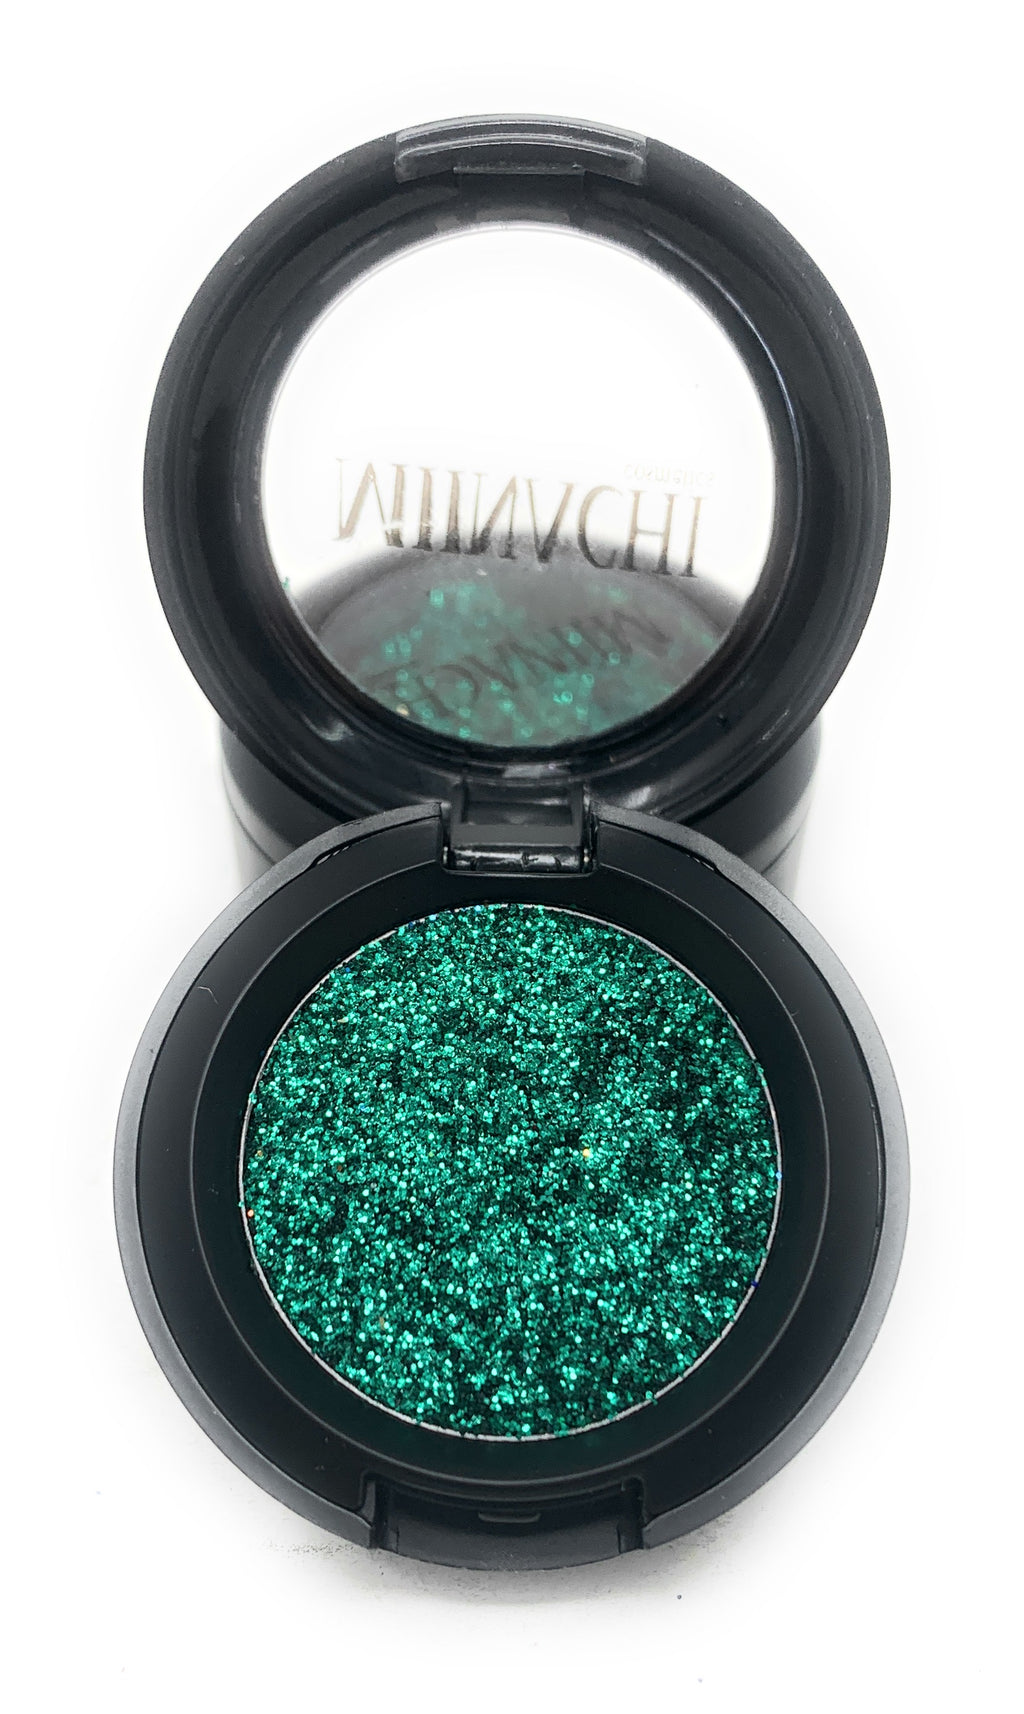 Single Pressed Glitter in the shade Hulk, No Glue Needed, In Compact, Pigmented, No Fall Out, Glitter, Cosmetic Grade Glitter